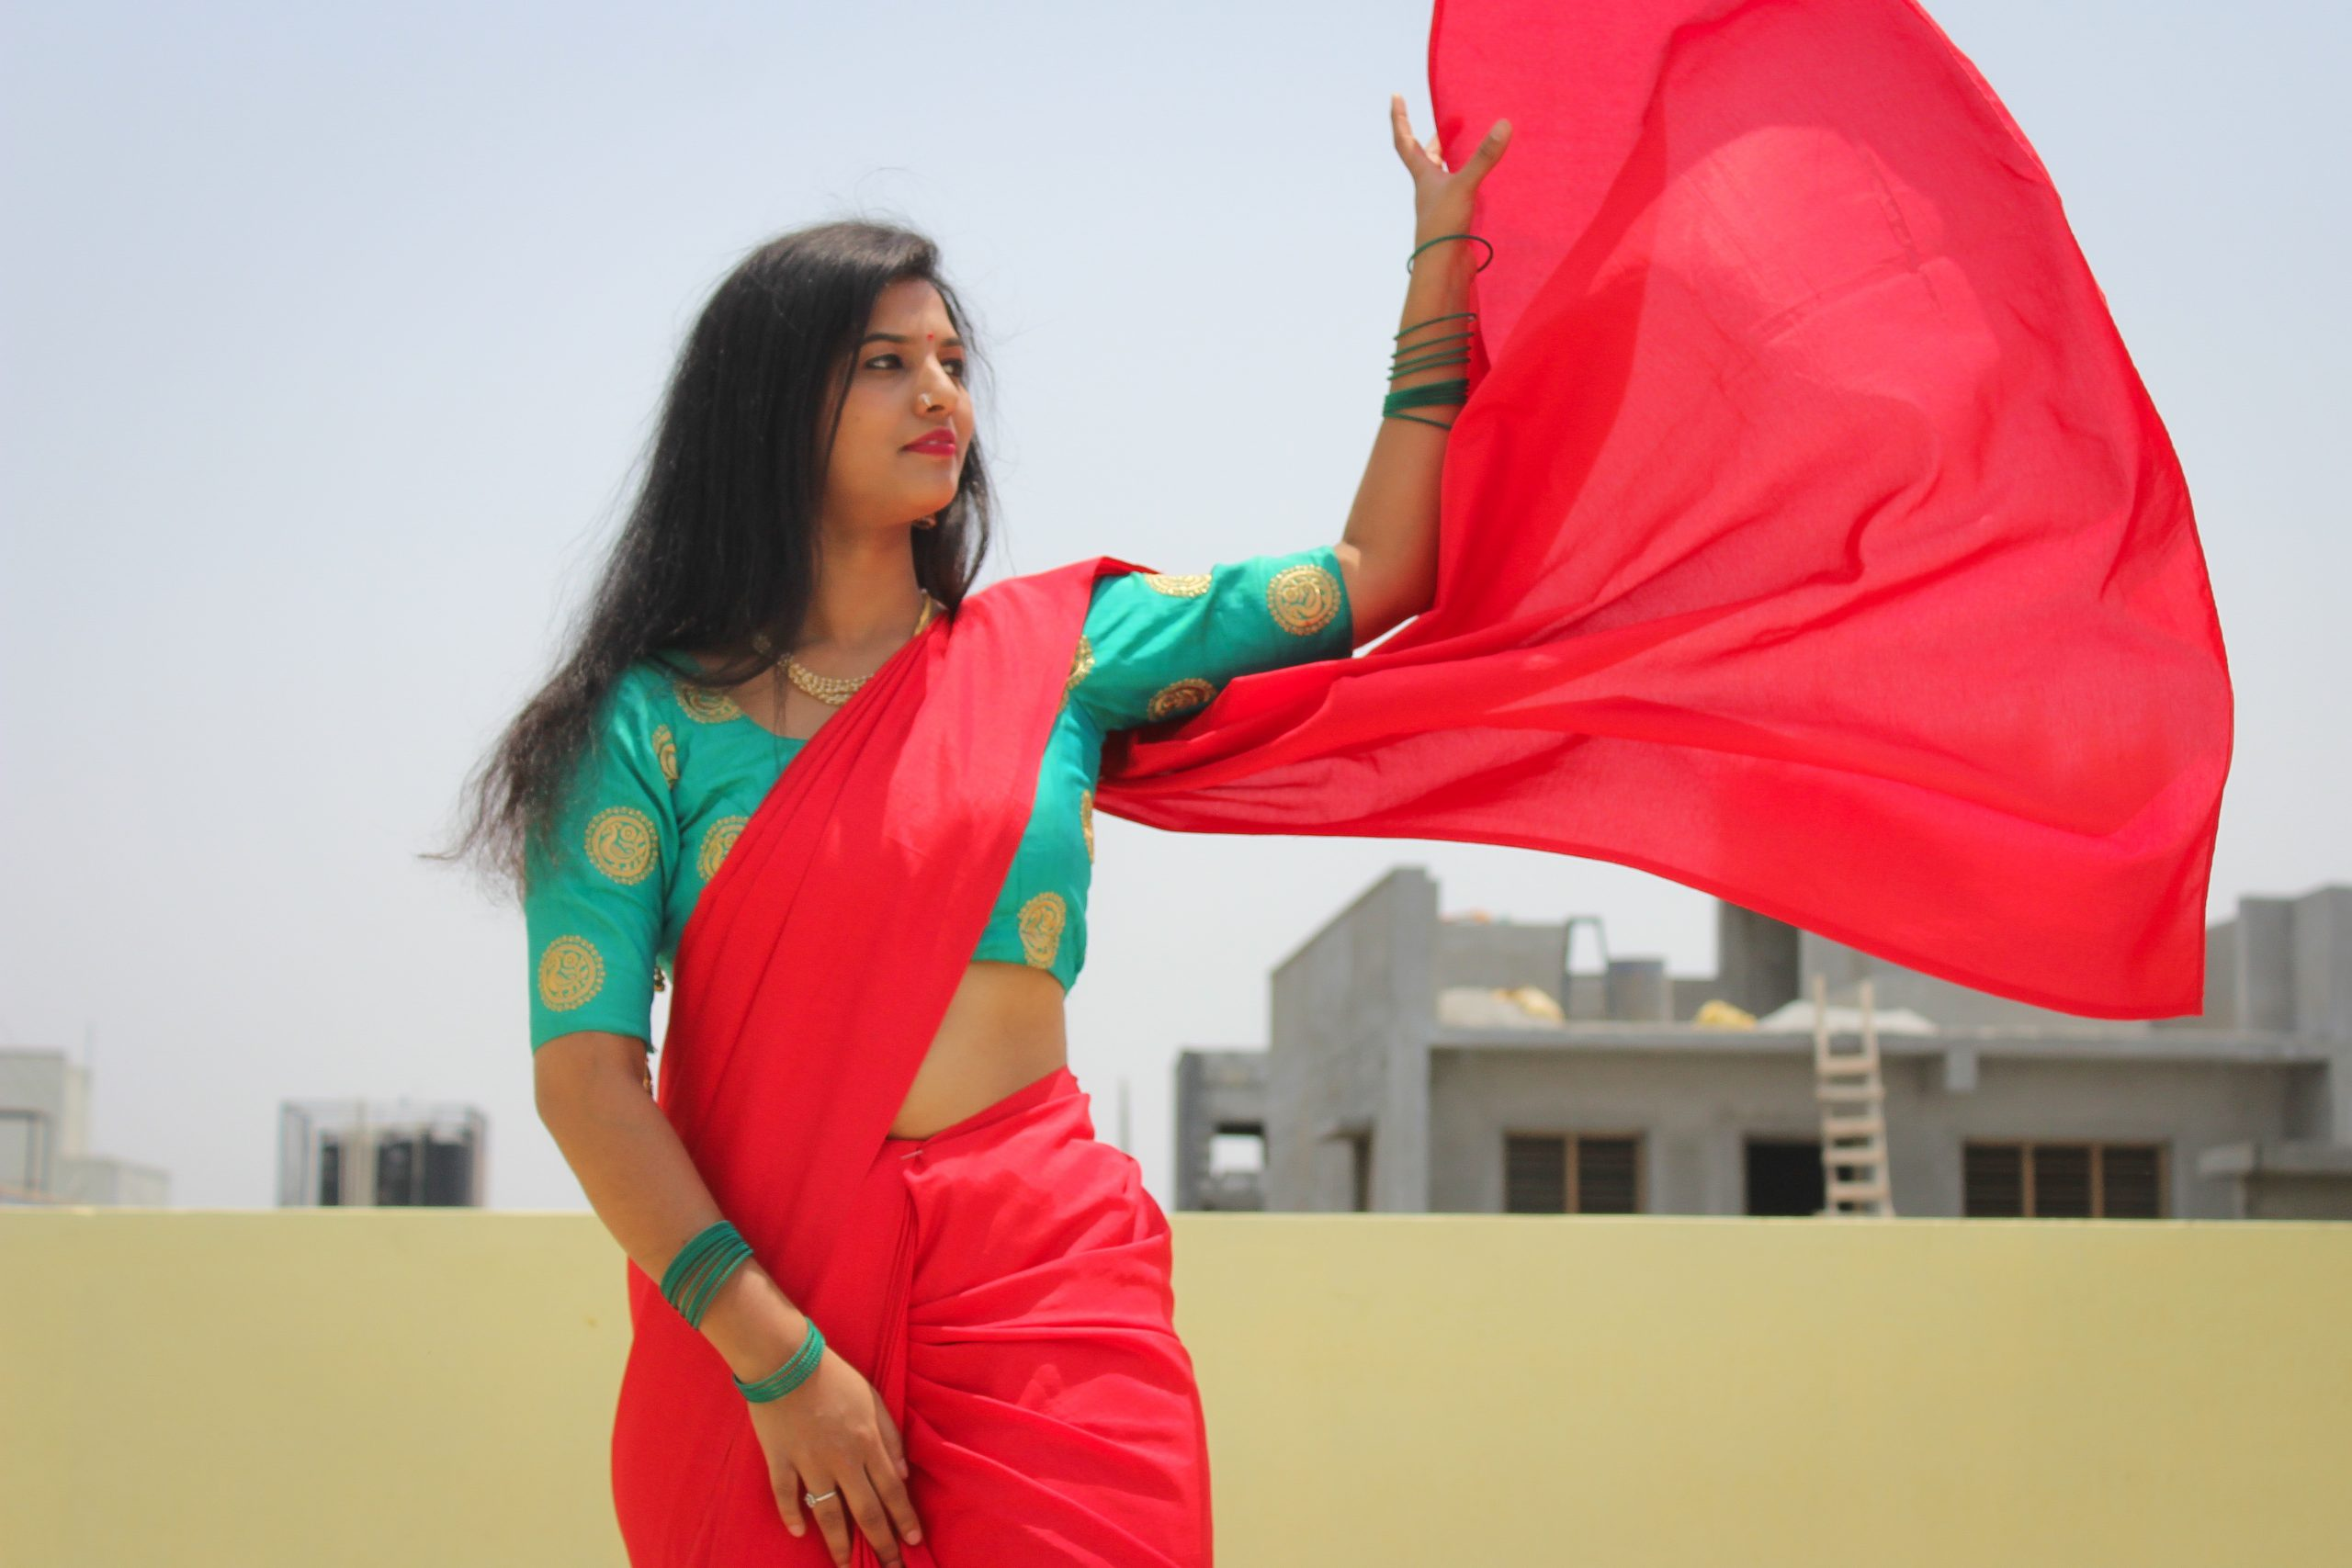 Model posing in a saree